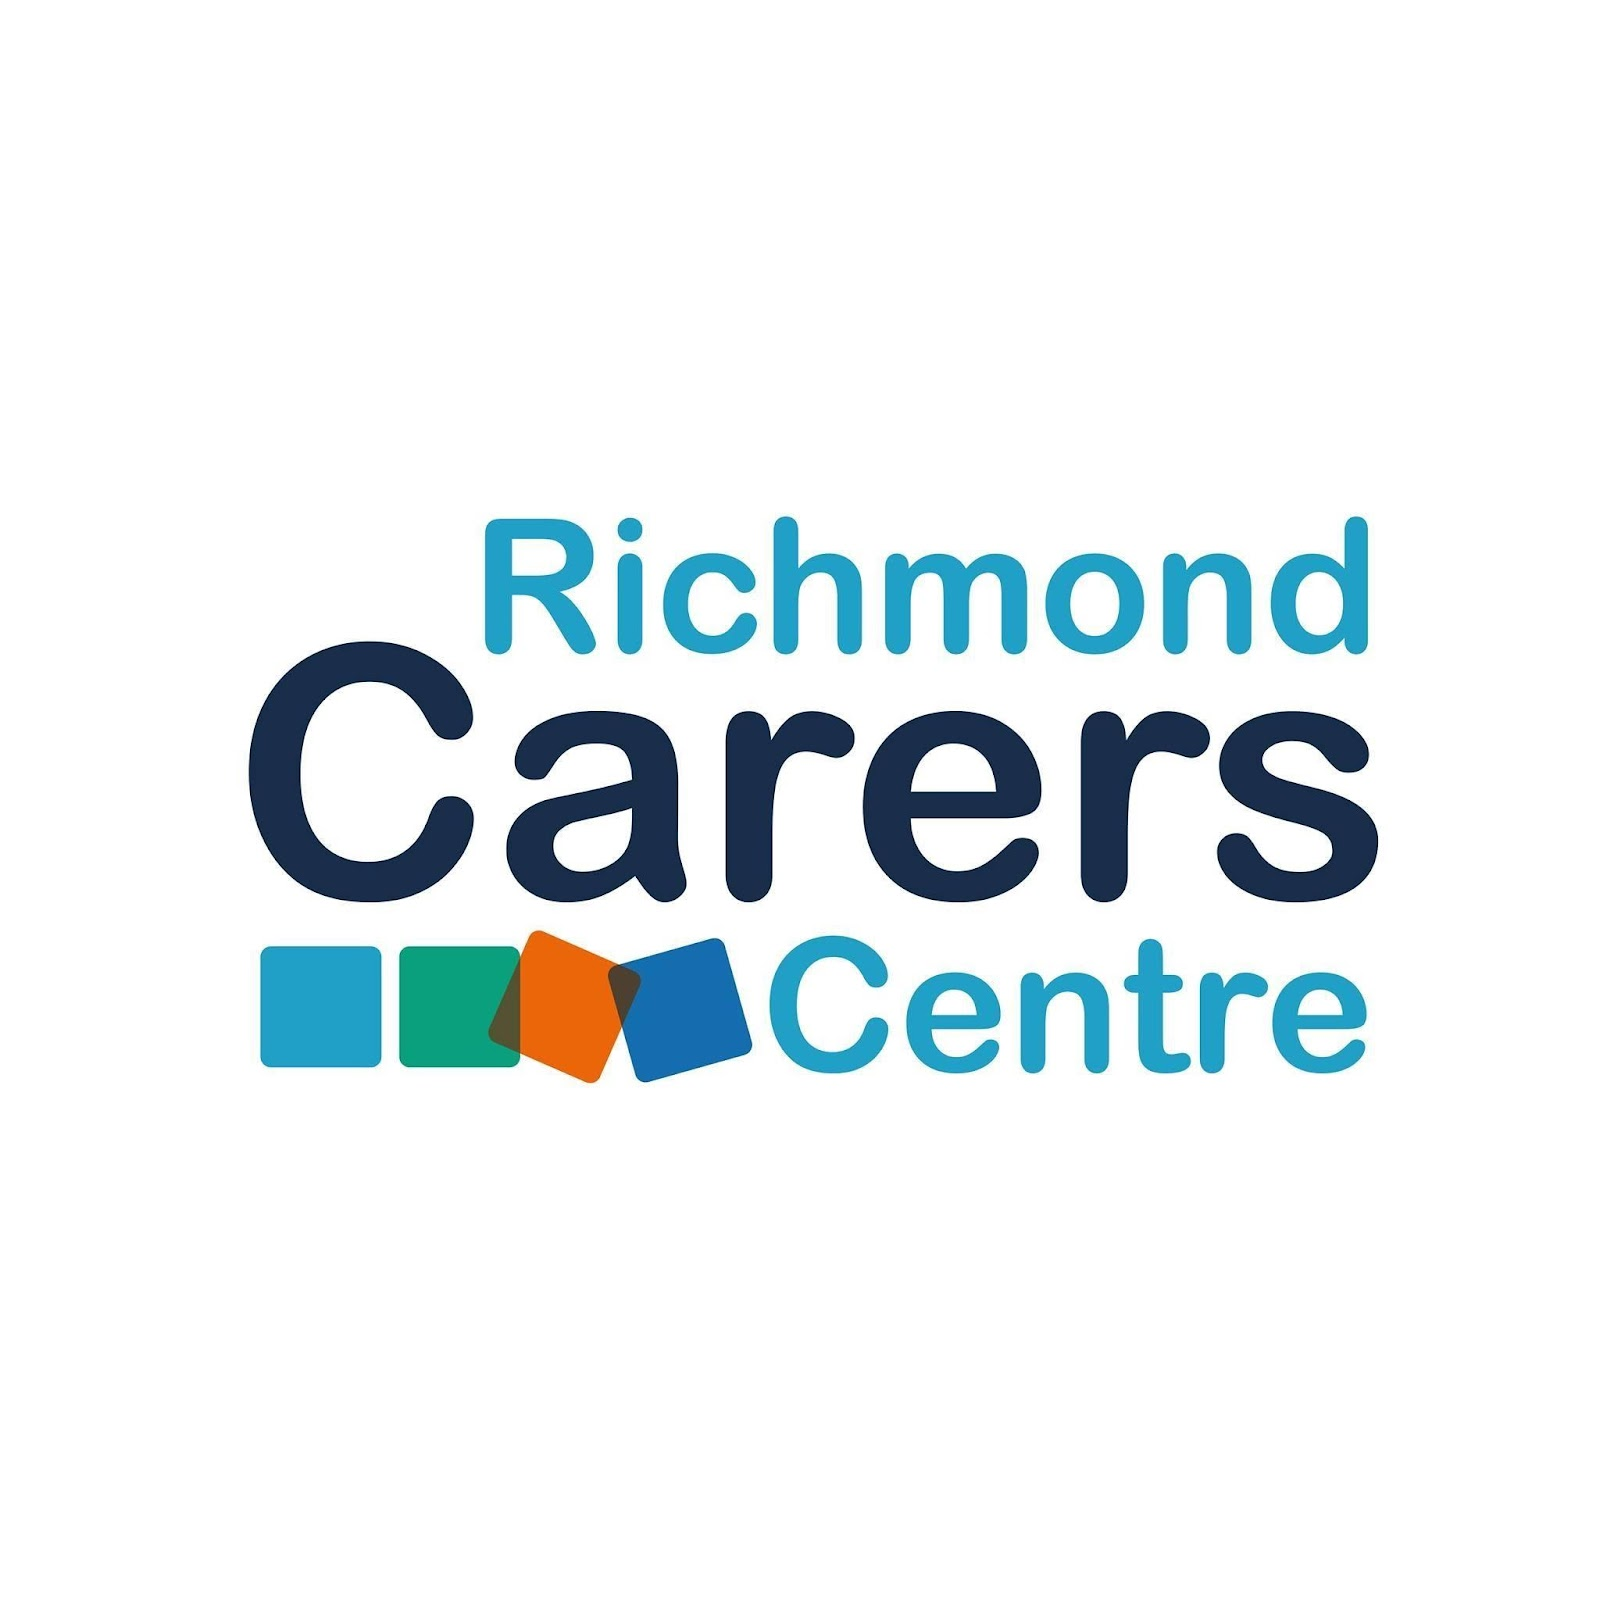 """May be an image of text that says """"Richmond Carers Centre"""""""